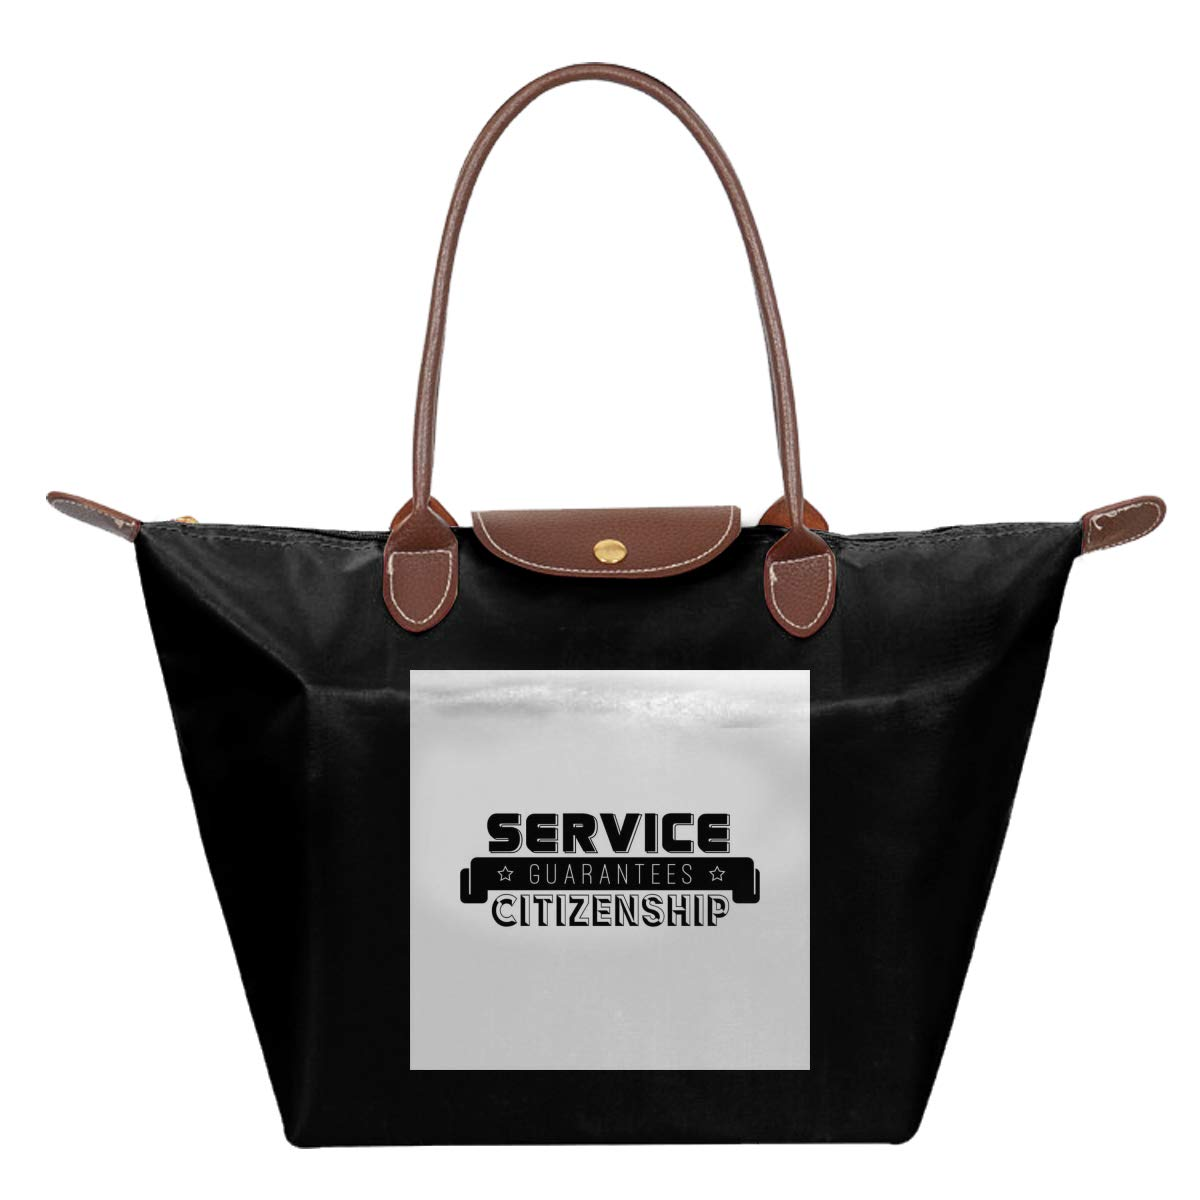 Starship Troopers Service Guarantees Citizenship Waterproof Leather Folded Messenger Nylon Bag Travel Tote Hopping Folding School Handbags